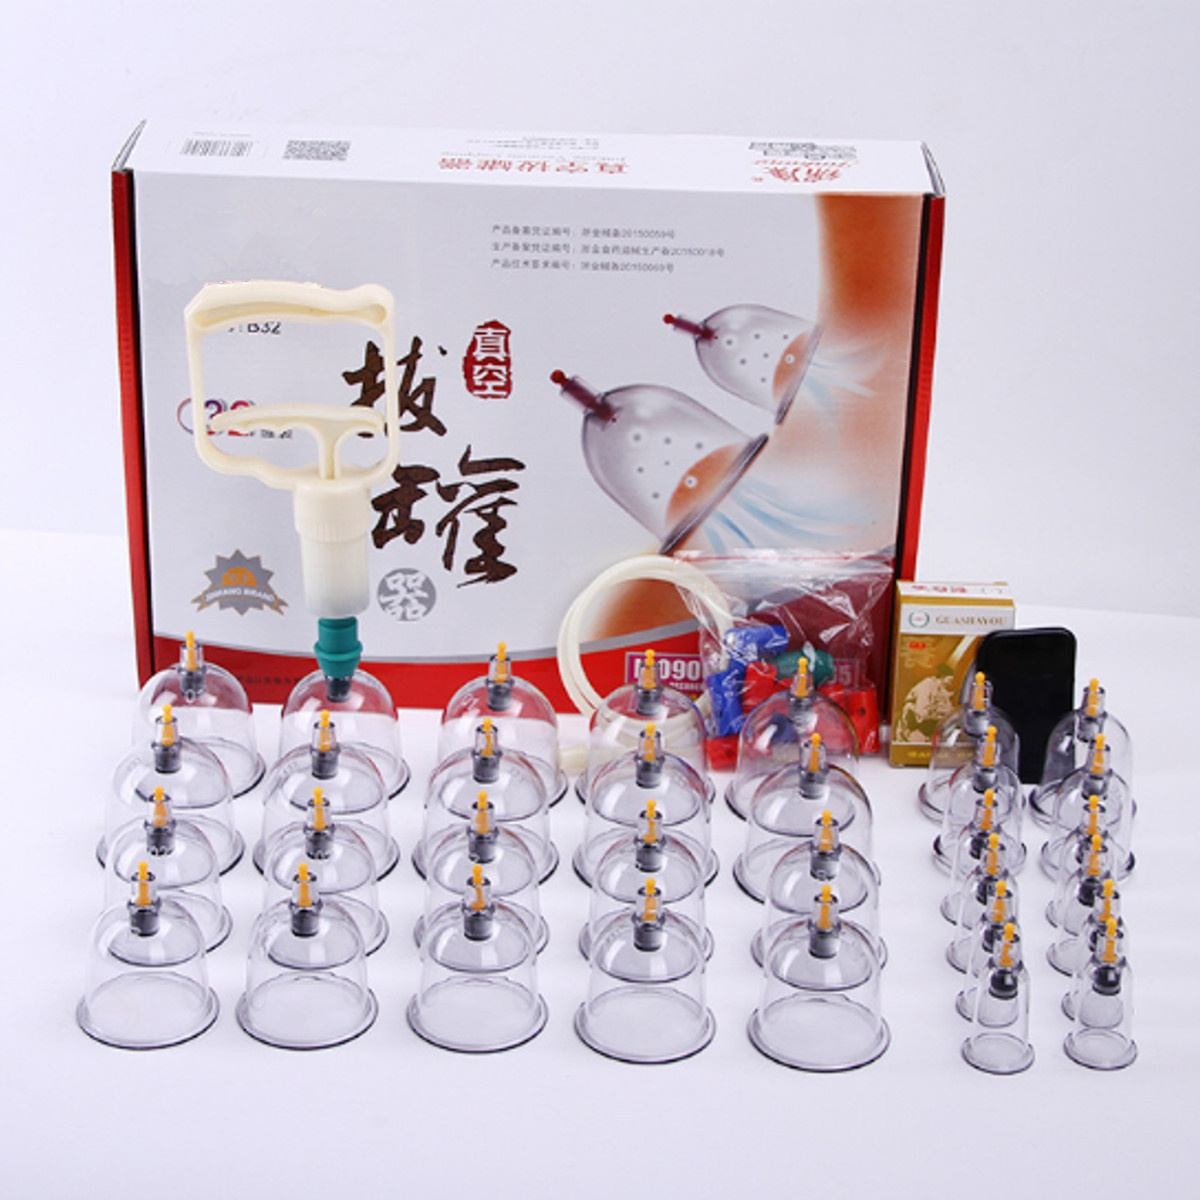 32 Cans Cups Chinese Vacuum Cupping Kit Pull Out Vacuum Apparatus Therapy Relax Massager Curve Suction Pumps